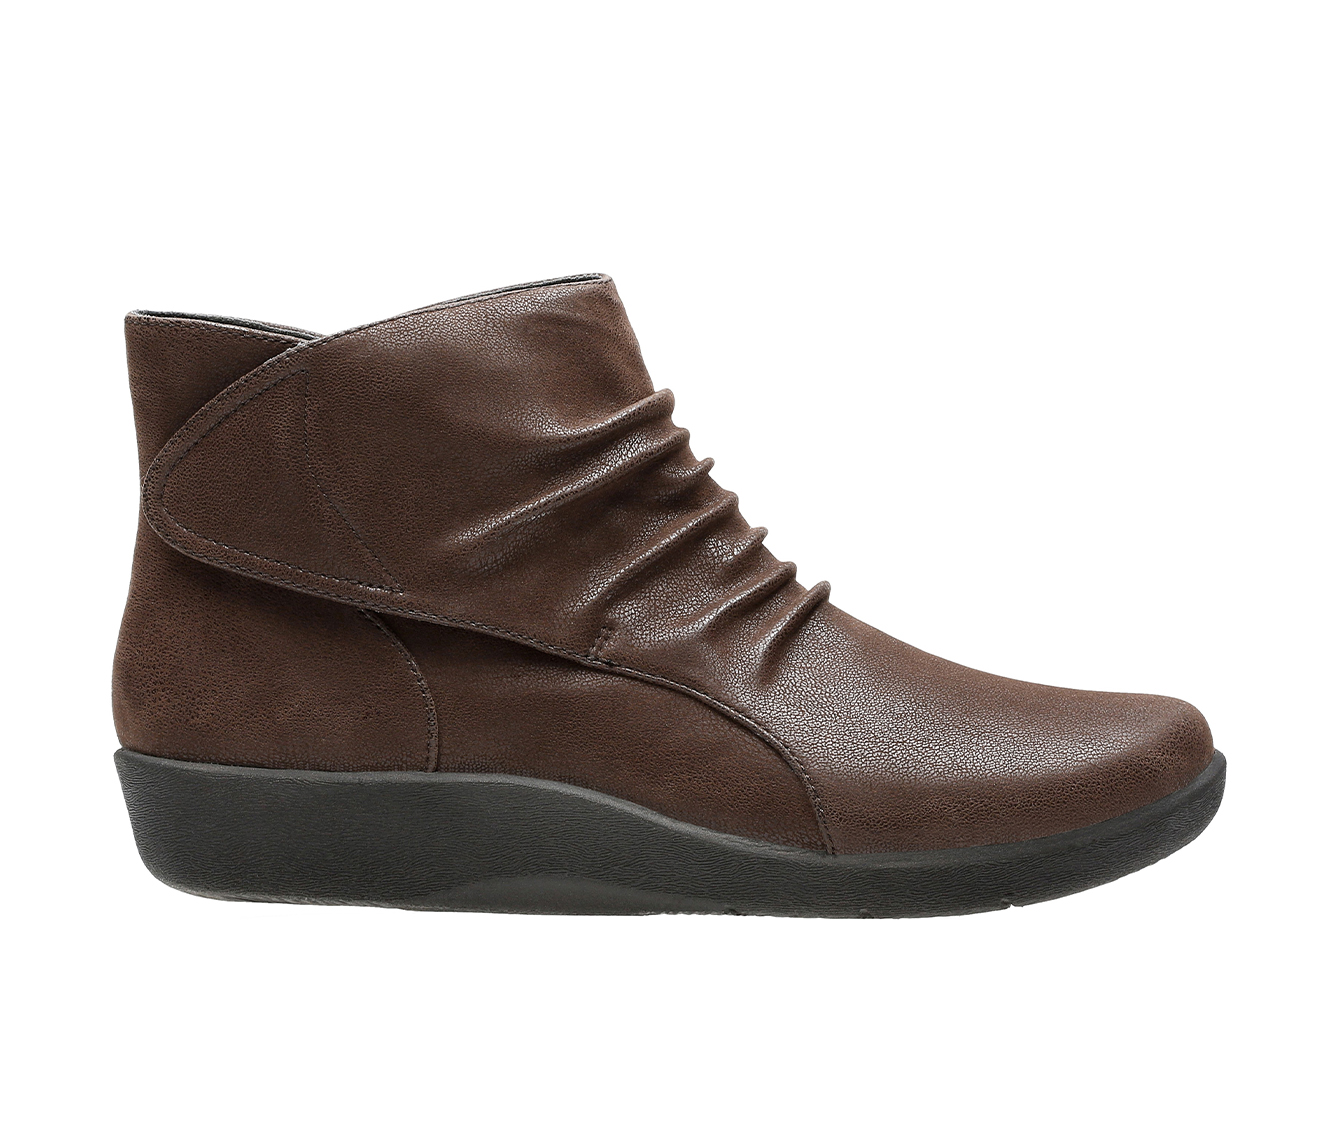 Clarks Sillian Sway Women's Boots (Brown - Canvas)